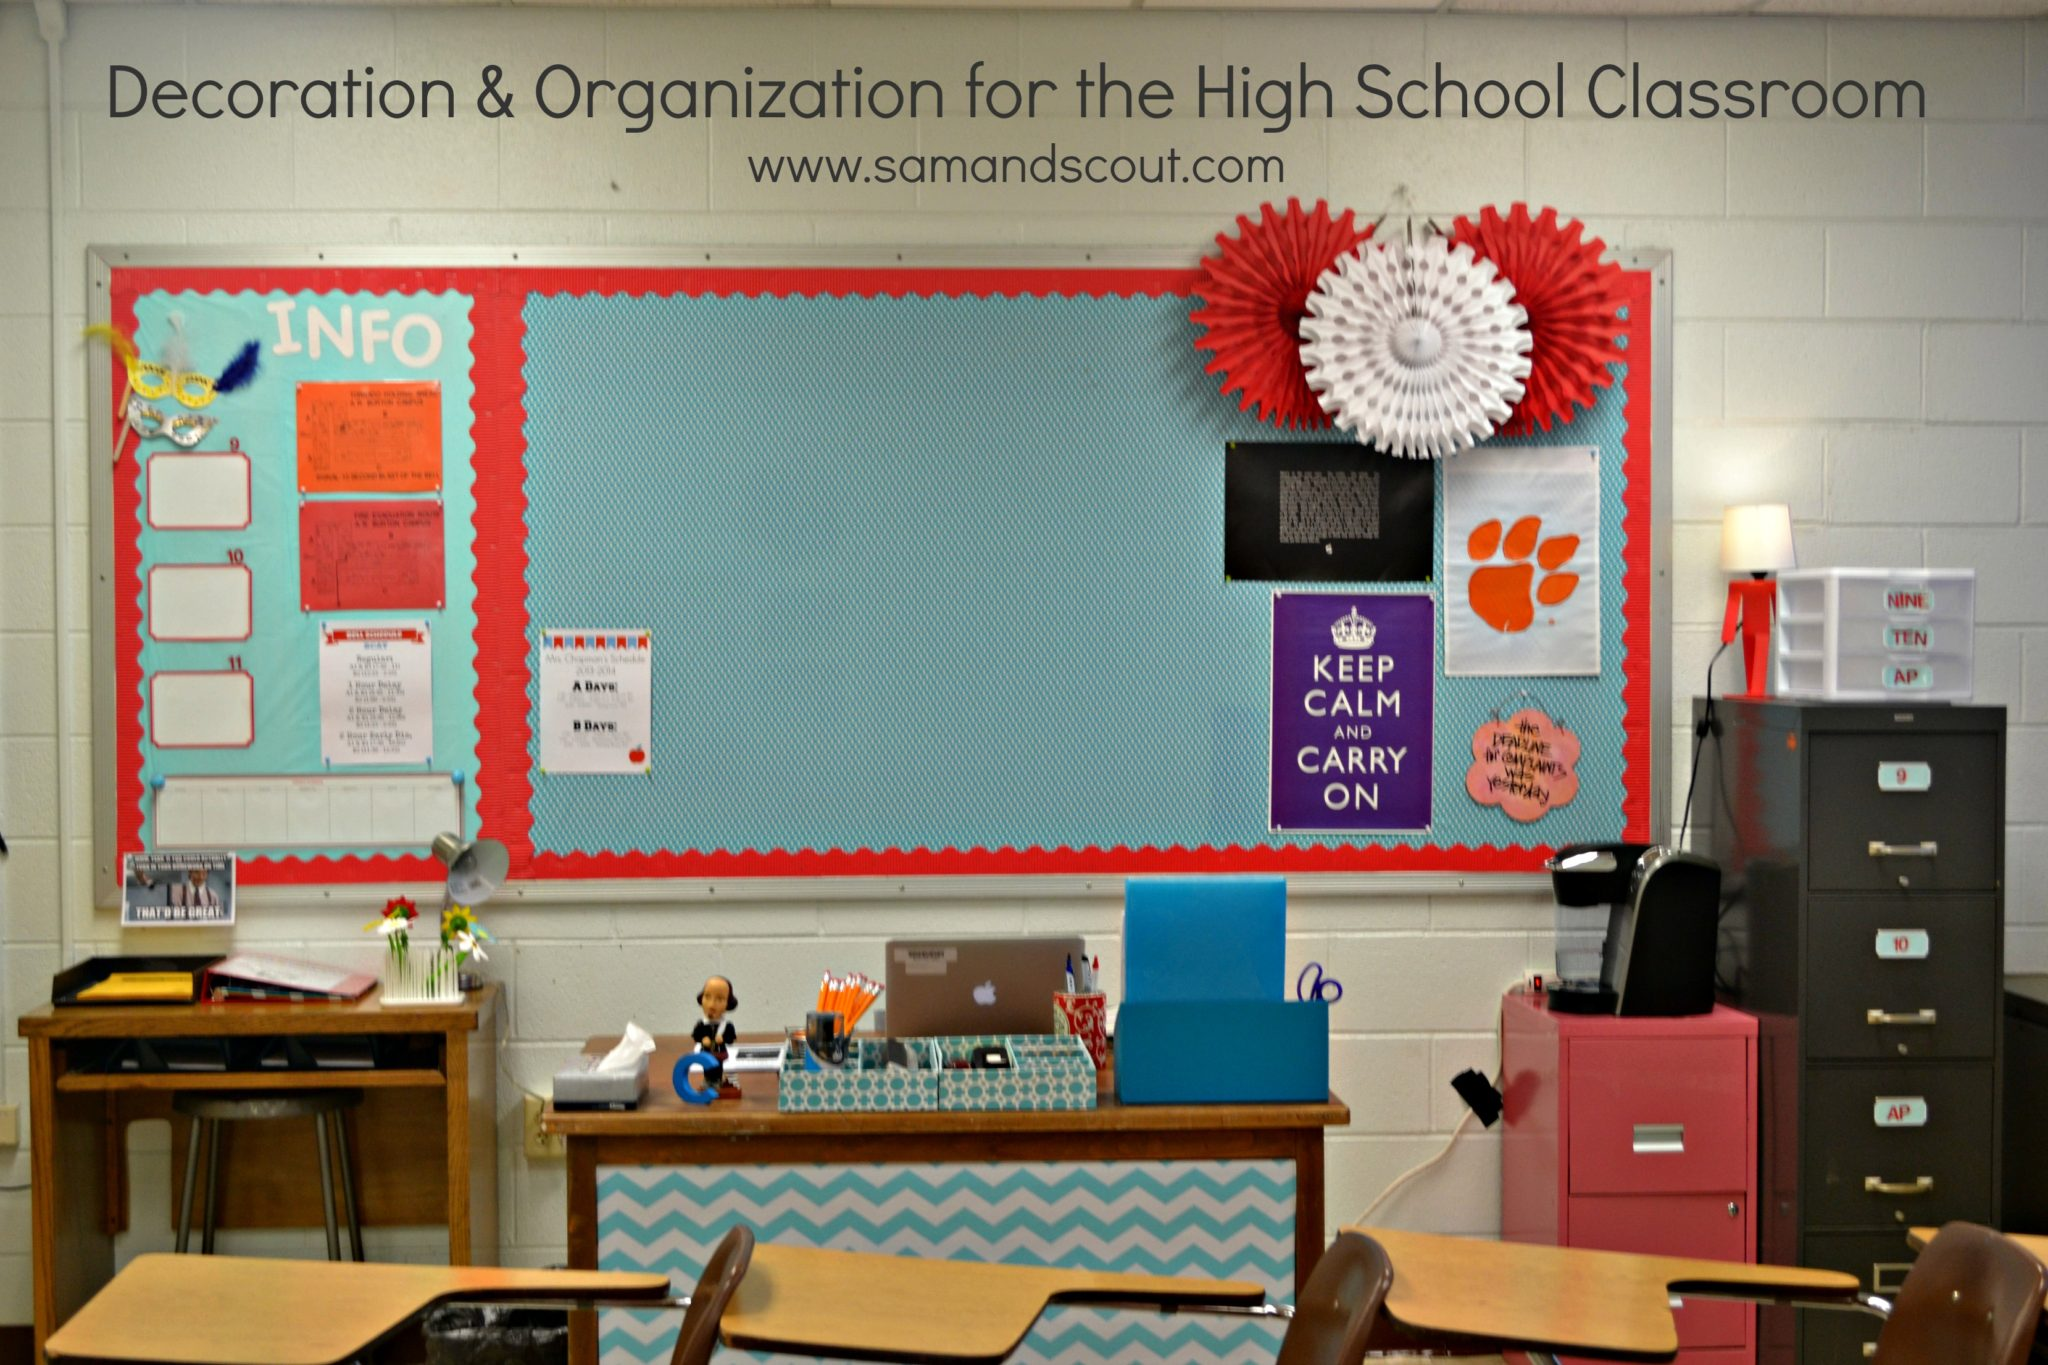 English Classroom Decor ~ Decoration organization for the high school classroom